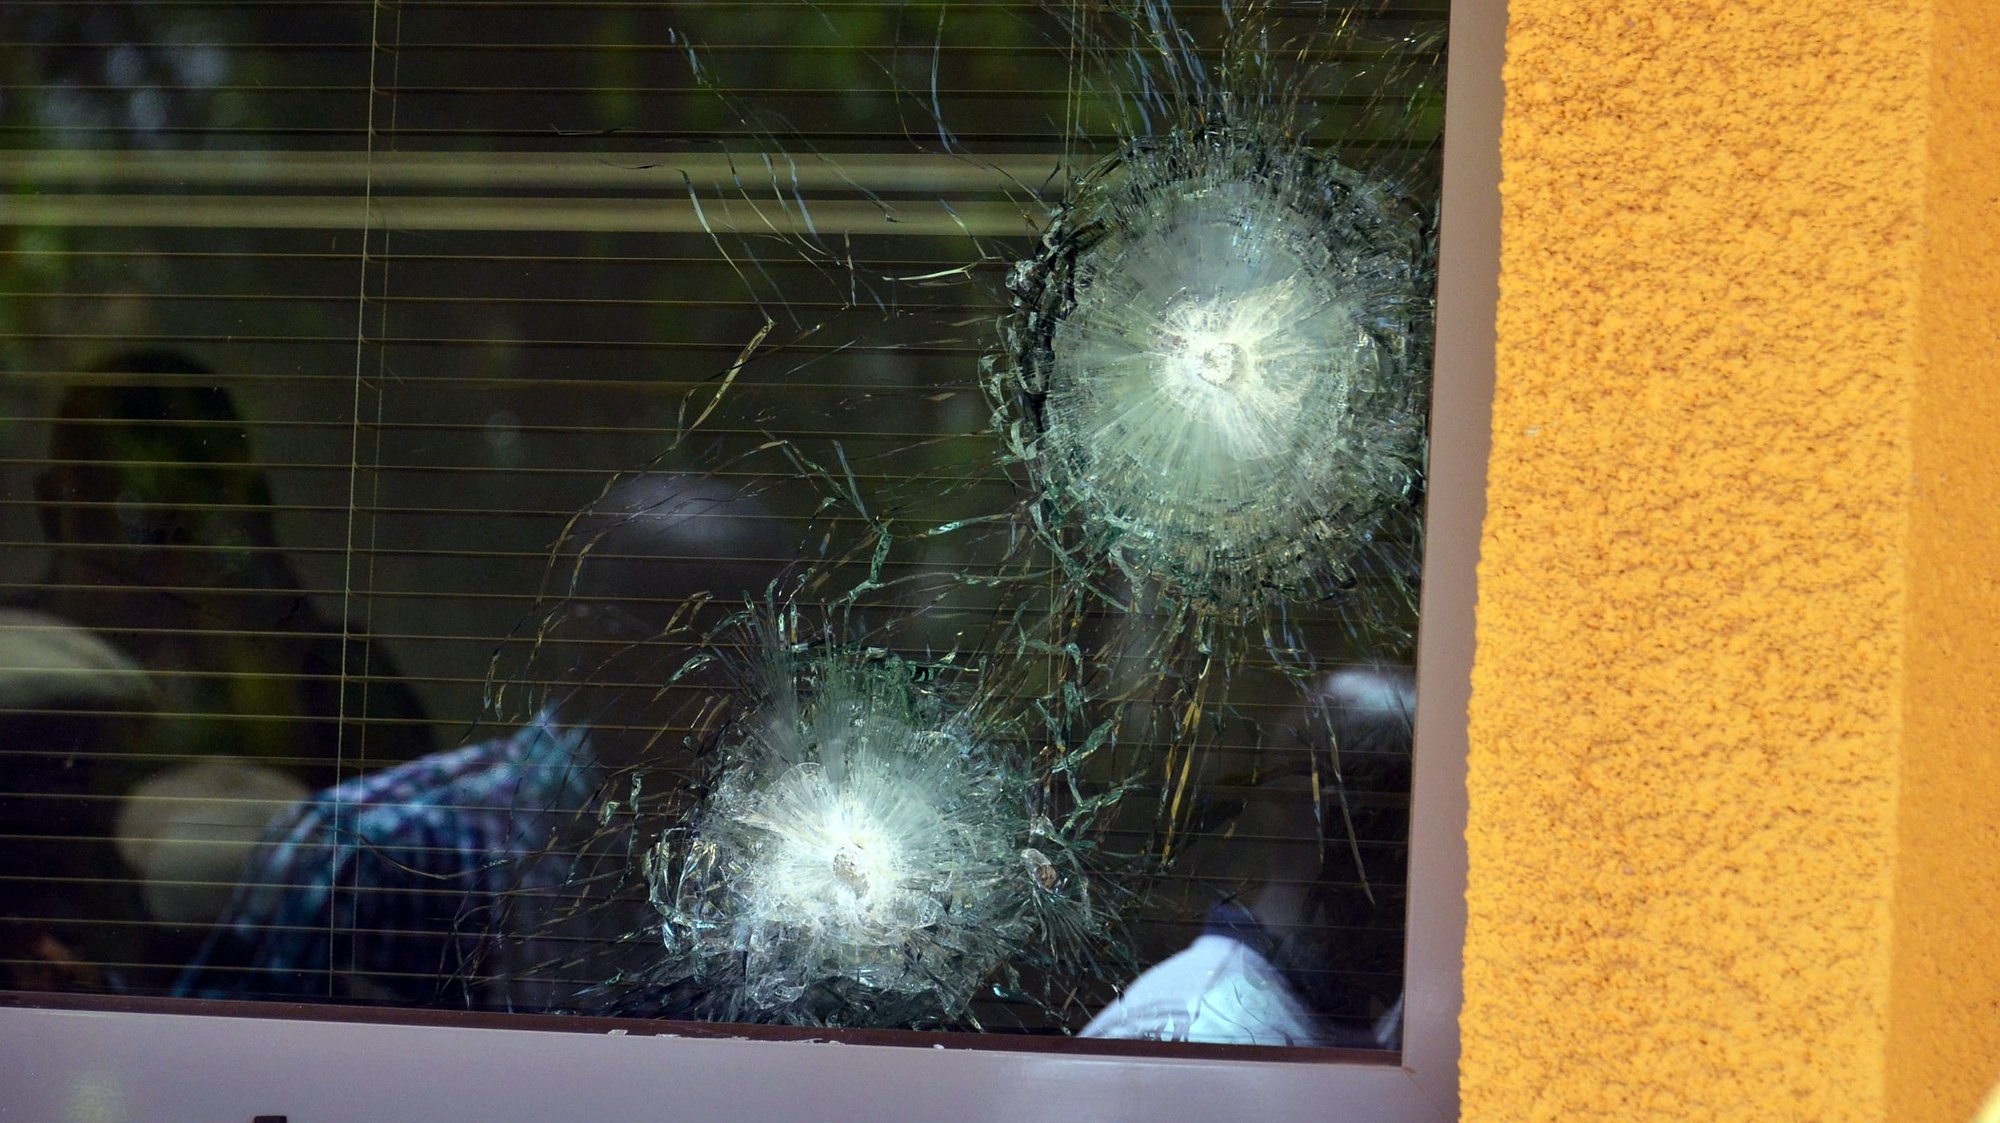 epa06577579 A bullet-shattered window at the French Embassy after an alleged terrorist attacks in the capital Ouagadougou, Burkina Faso, 03 March 2018. According to reports at least 28 people have been killed and dozens left wounded in the attacks on the French Embassy and miltary headquarters in Ouagadougou.  EPA/LEGNAN KOULA